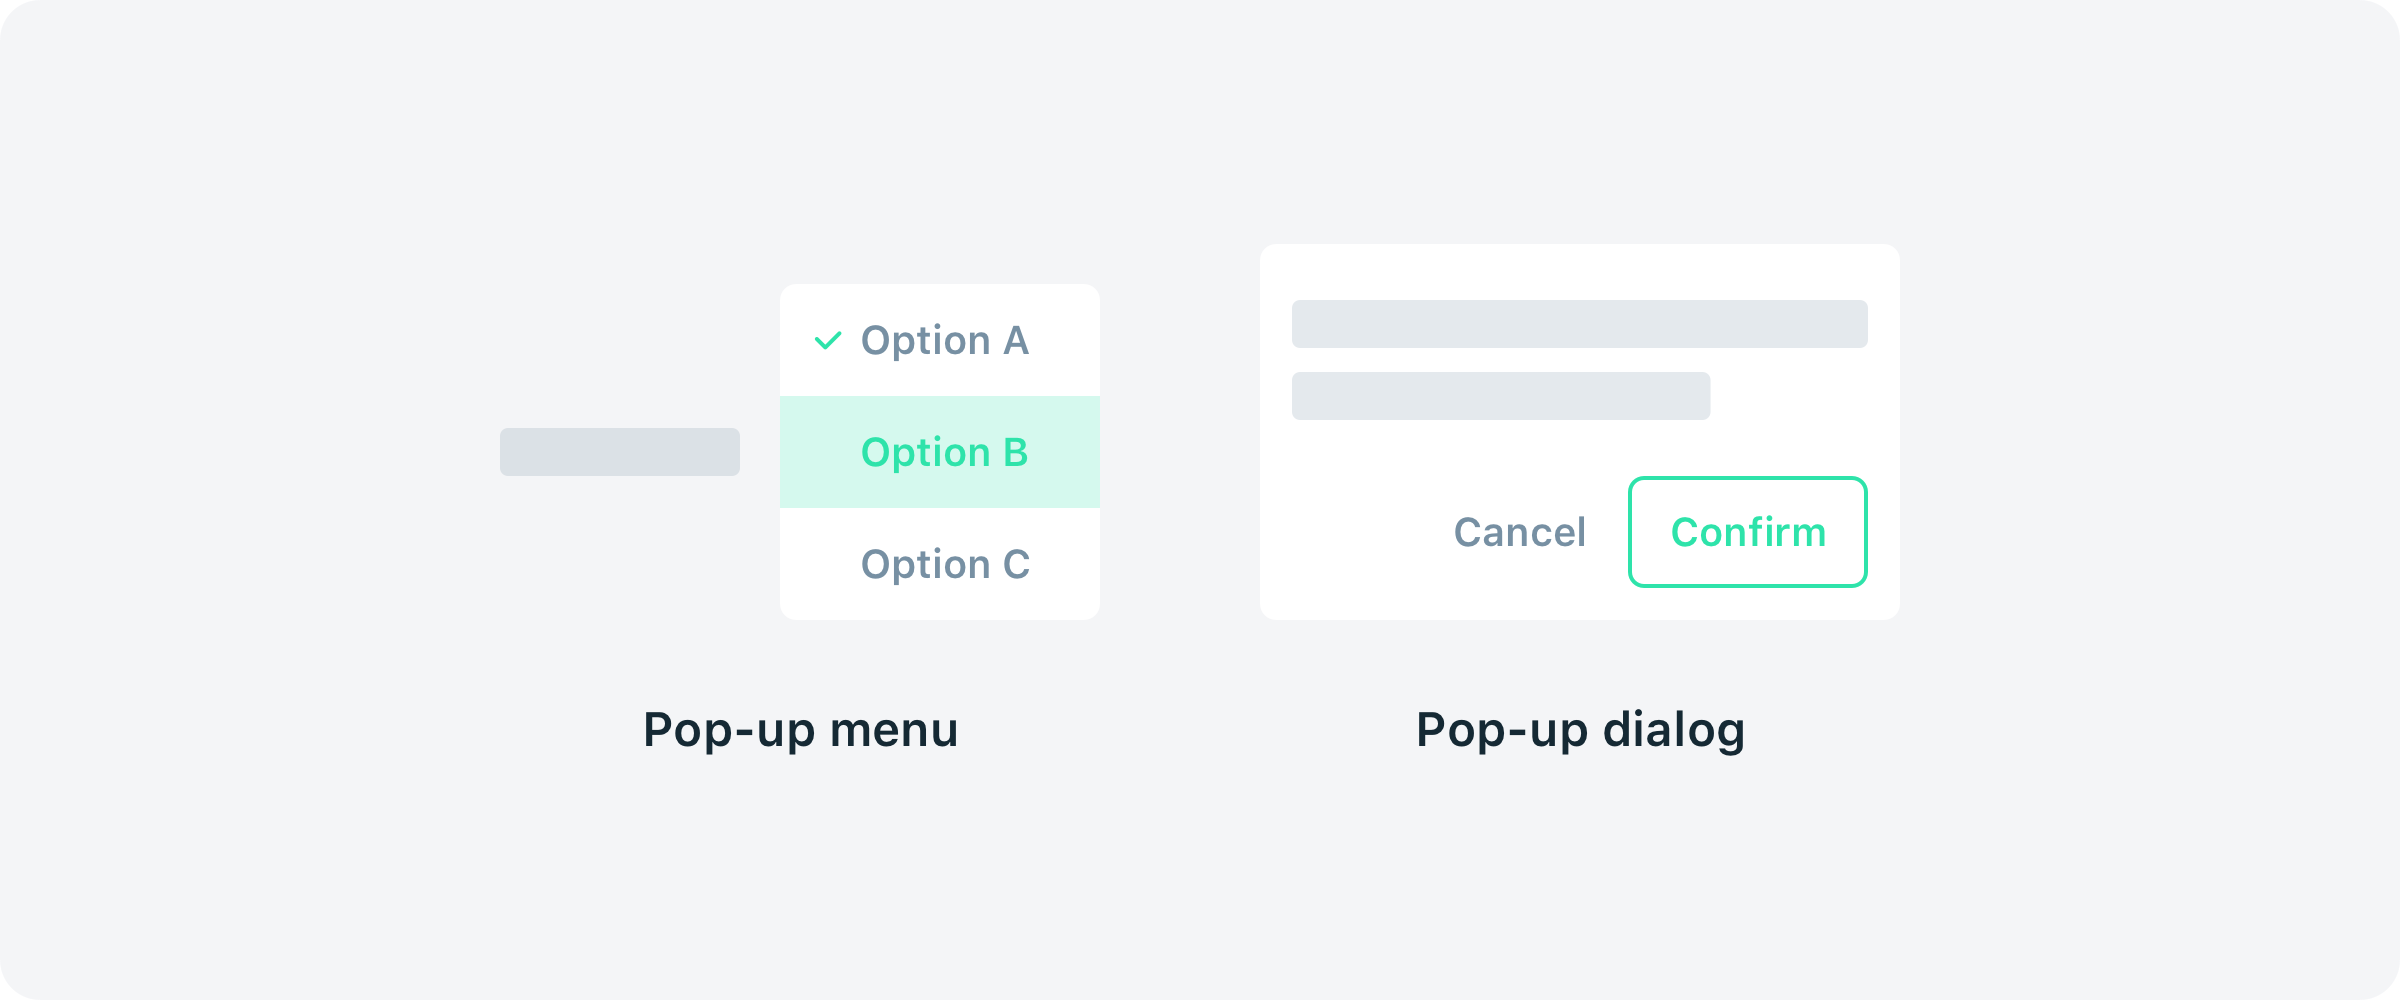 Pop-up, popover or popper? — a quick look into UI terms